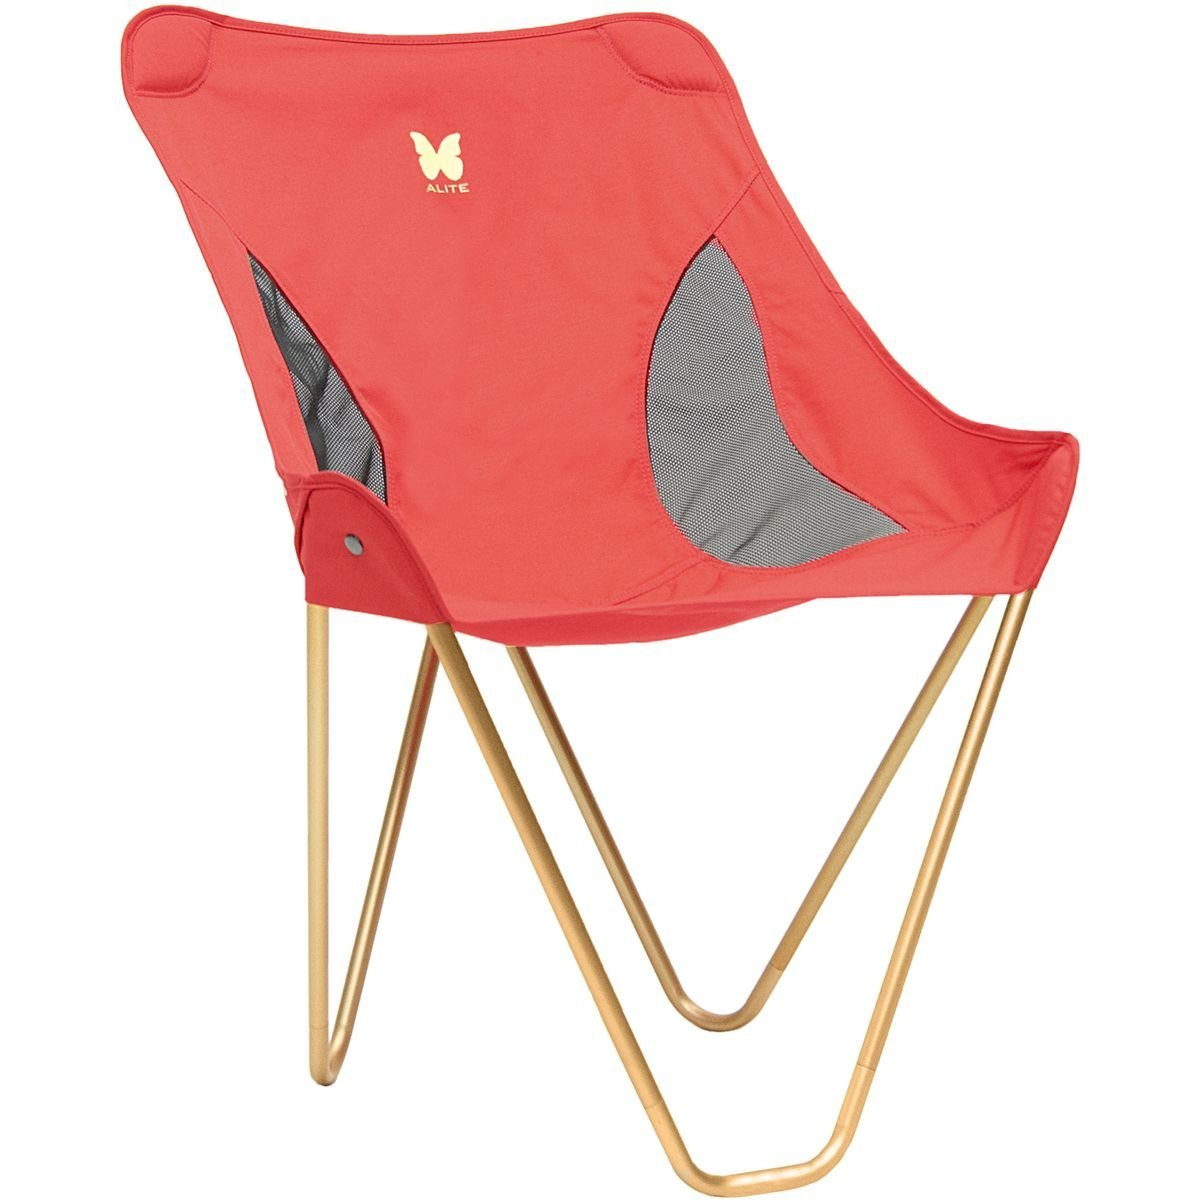 Alite Calpine Chair B019NXV5PS  レッド(Lava Red) One Size